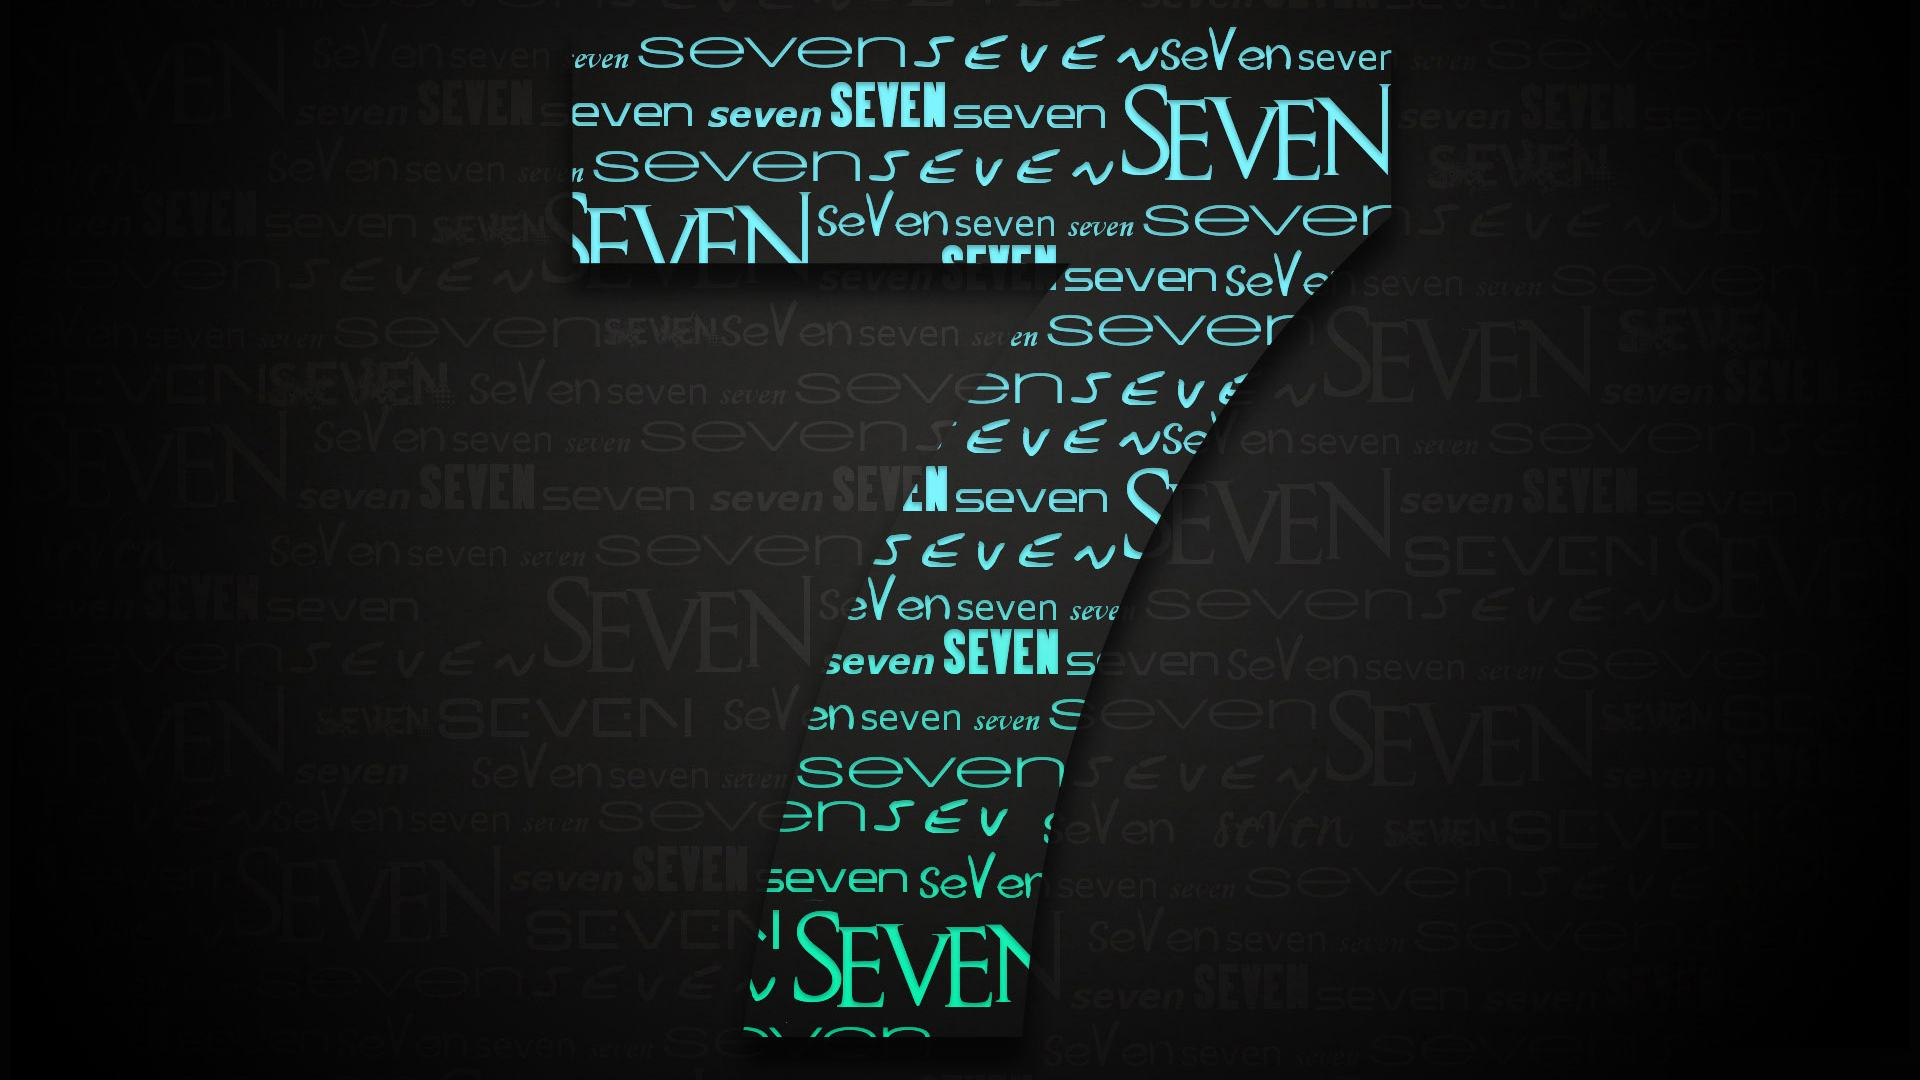 Обои Seven (Windows 7) 1920x1080